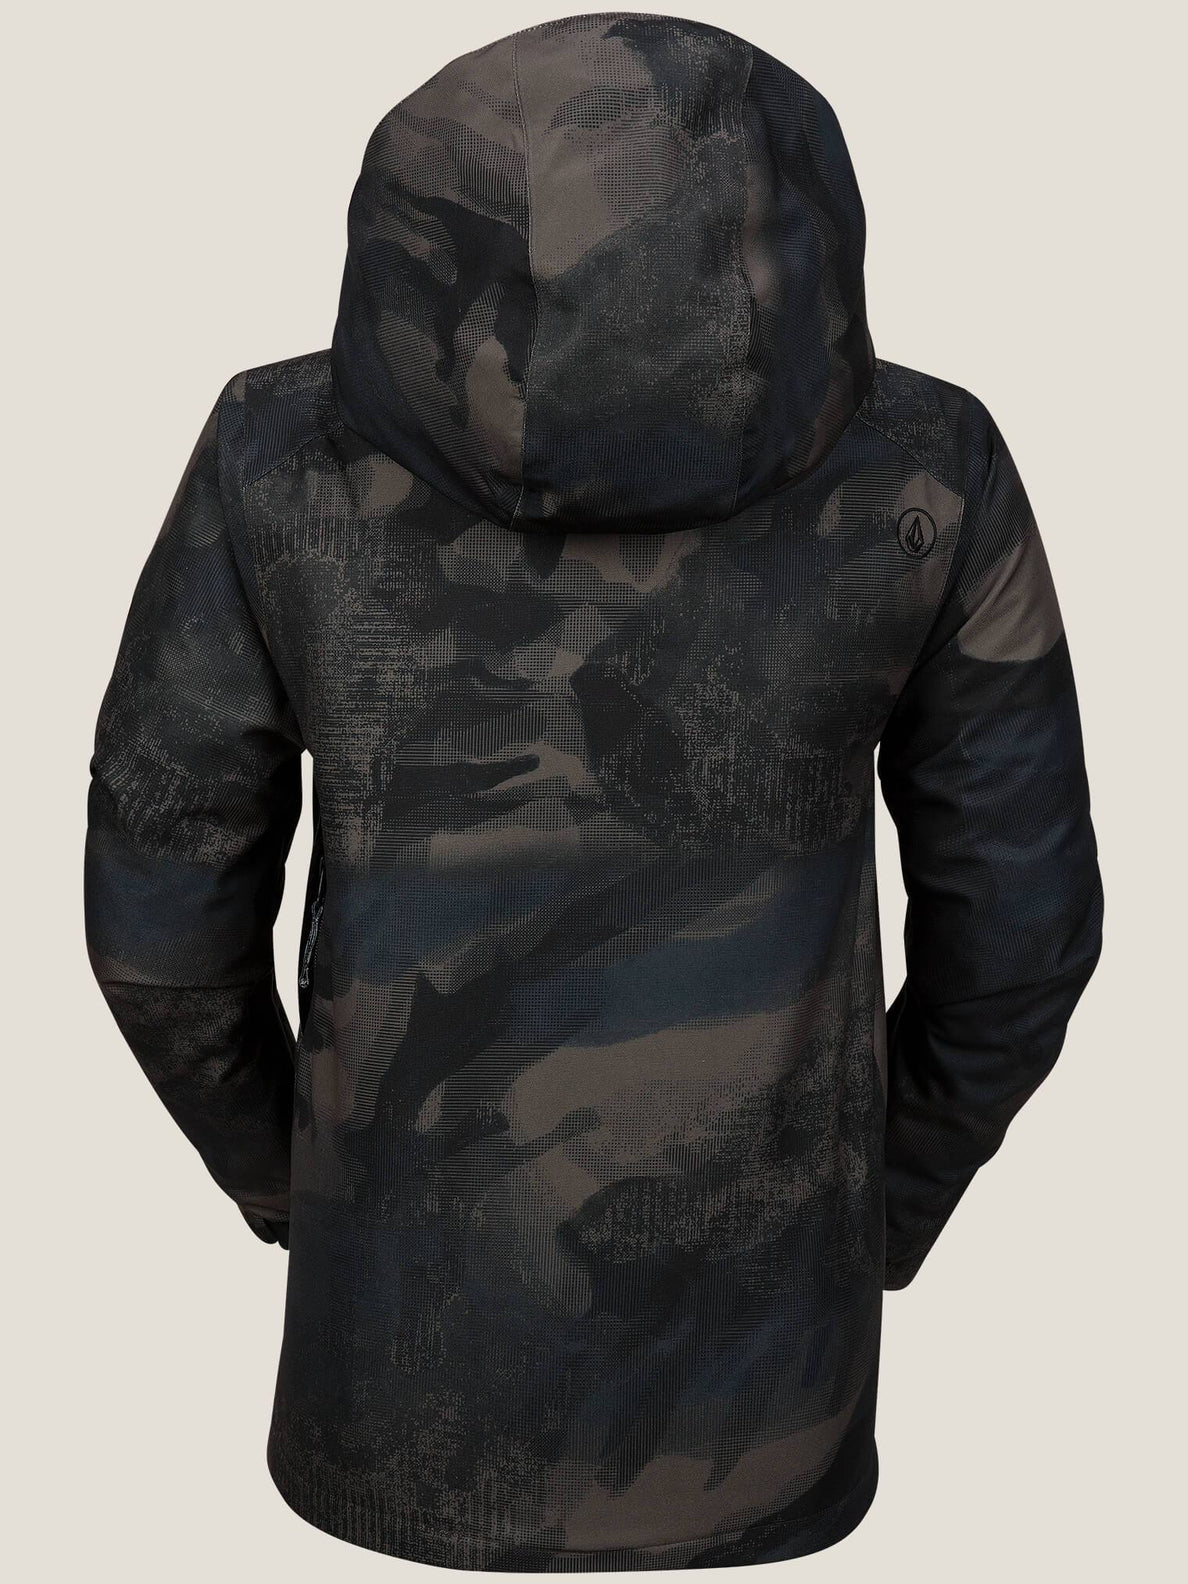 Garibaldi Insulated Jacket In Camouflage, Back View